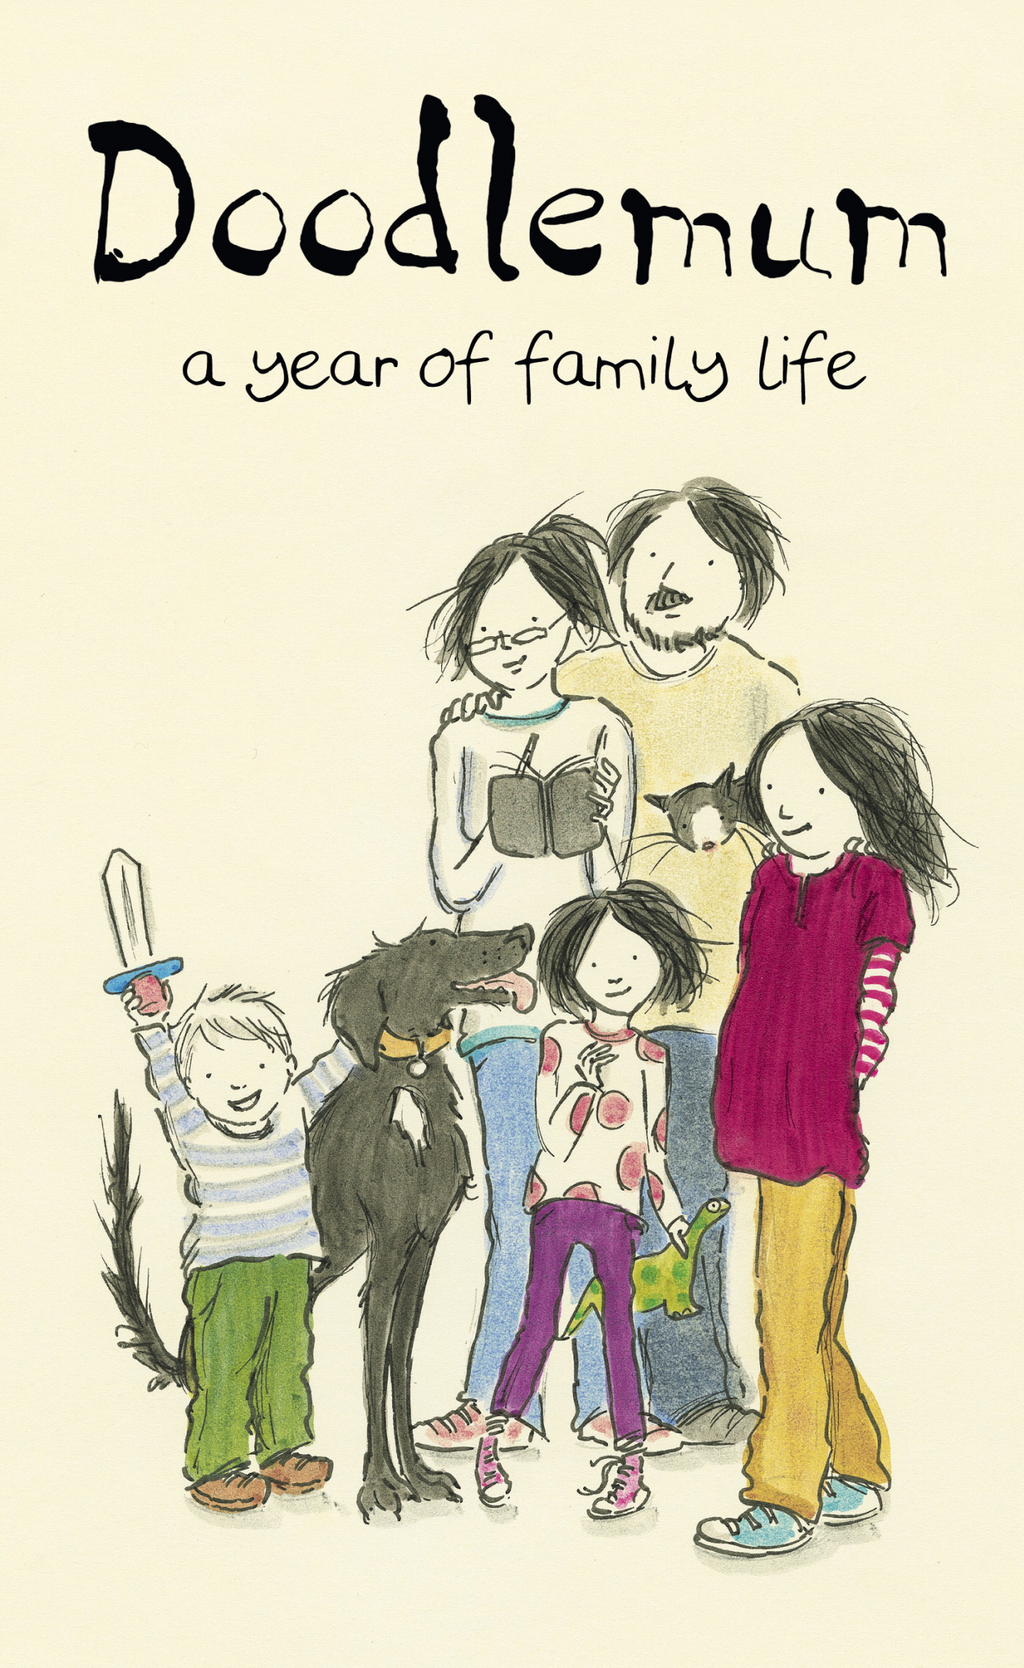 Doodlemum a year of family life